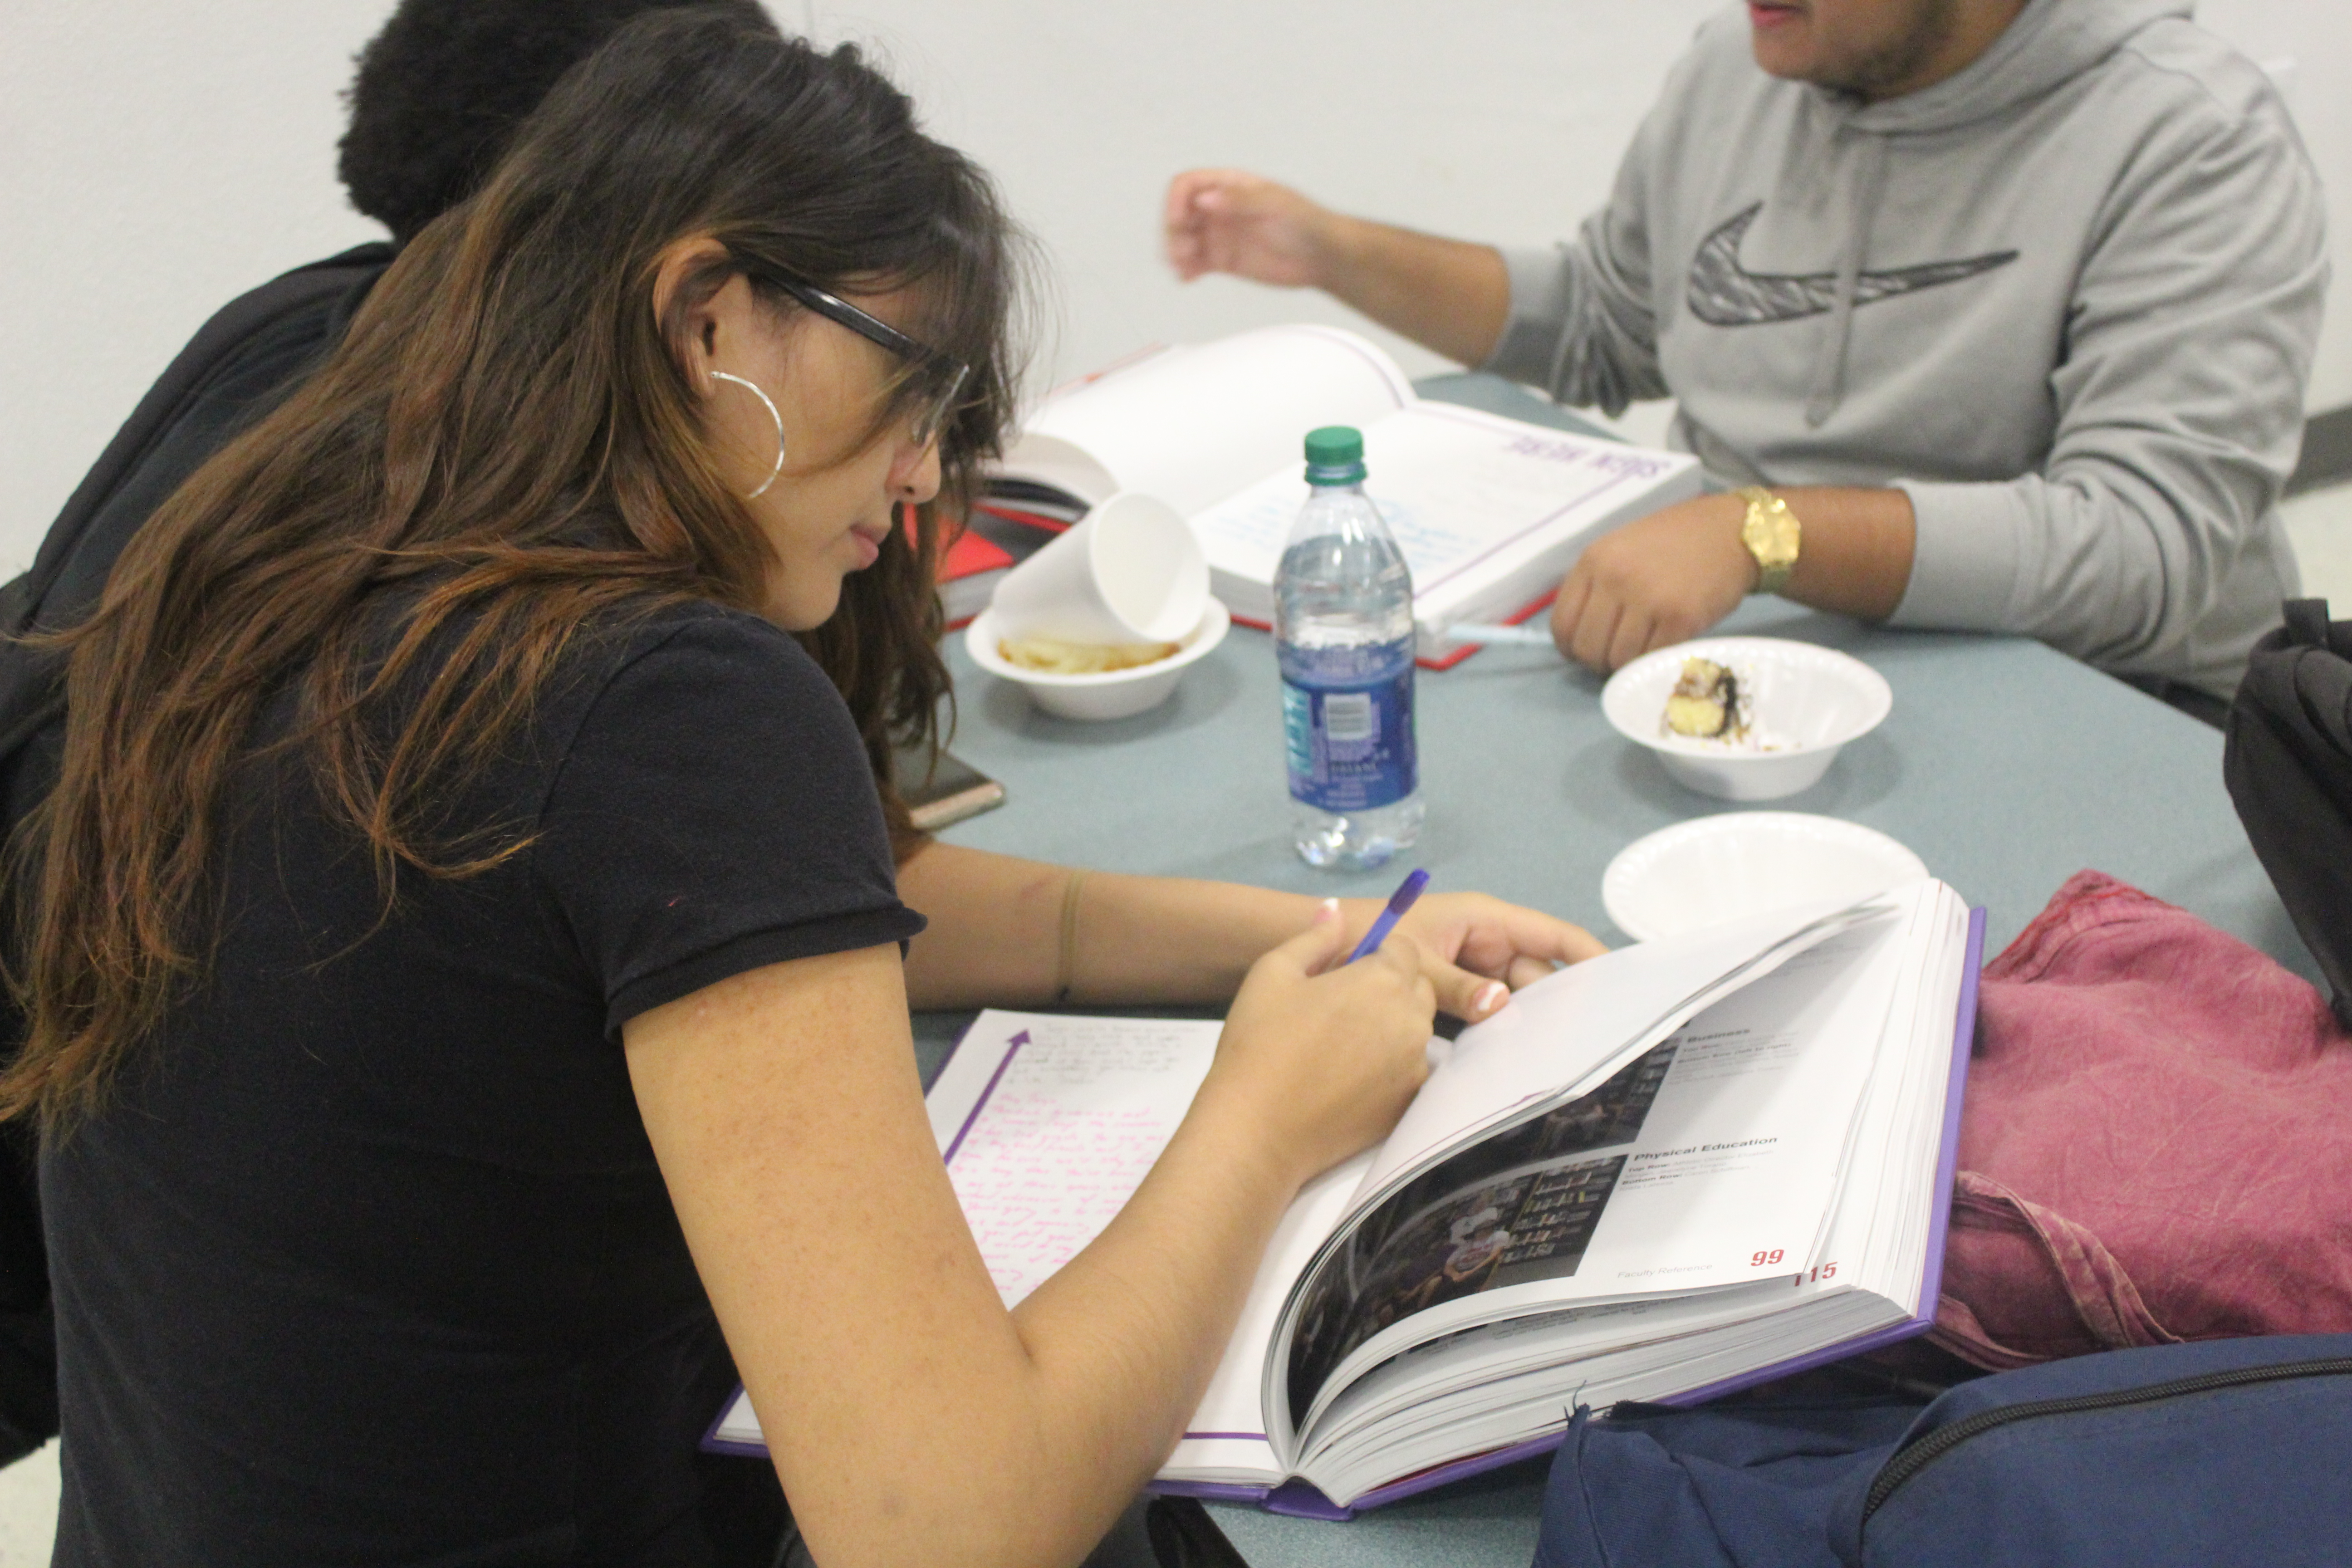 Students attend yearbook signing party